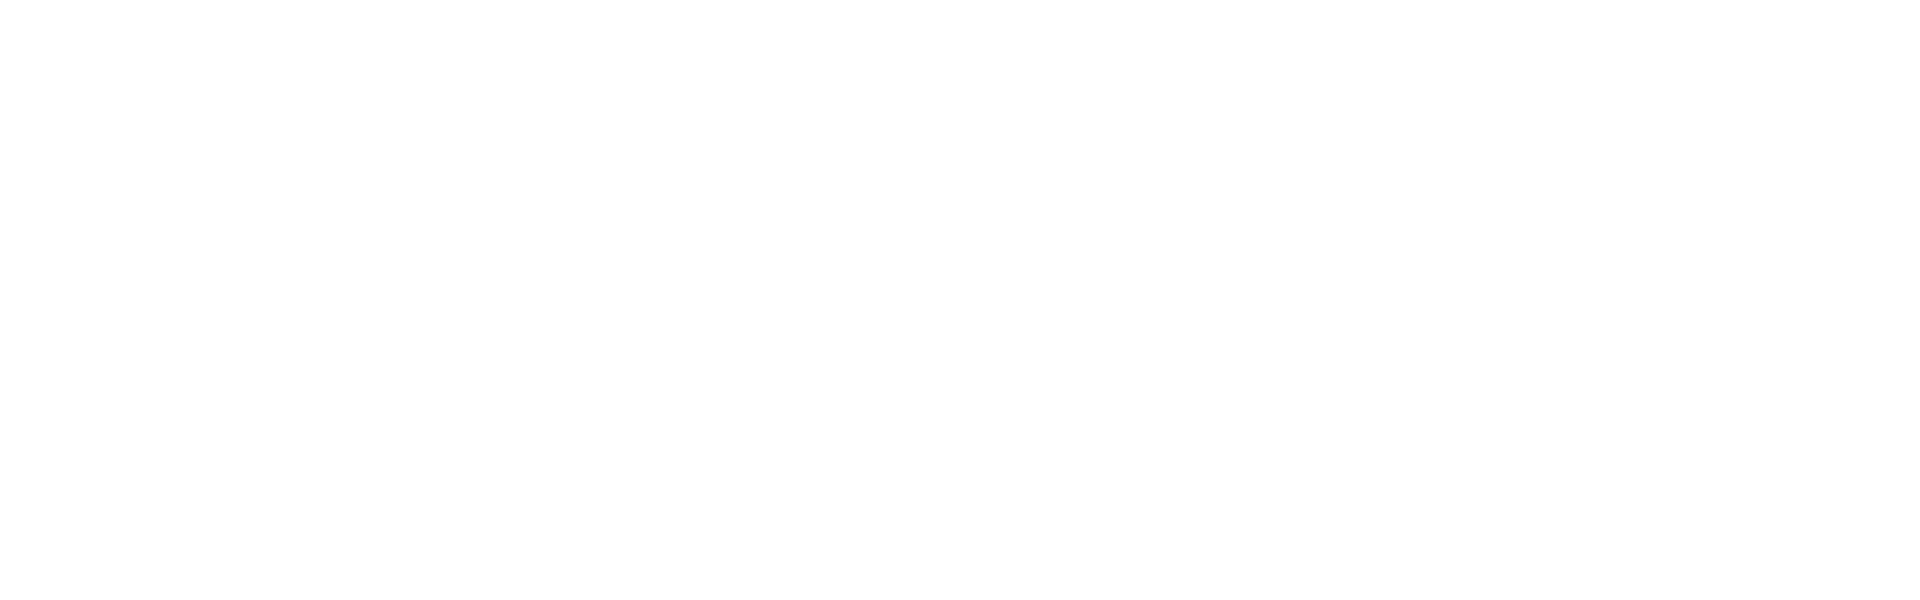 TravelBanner.png